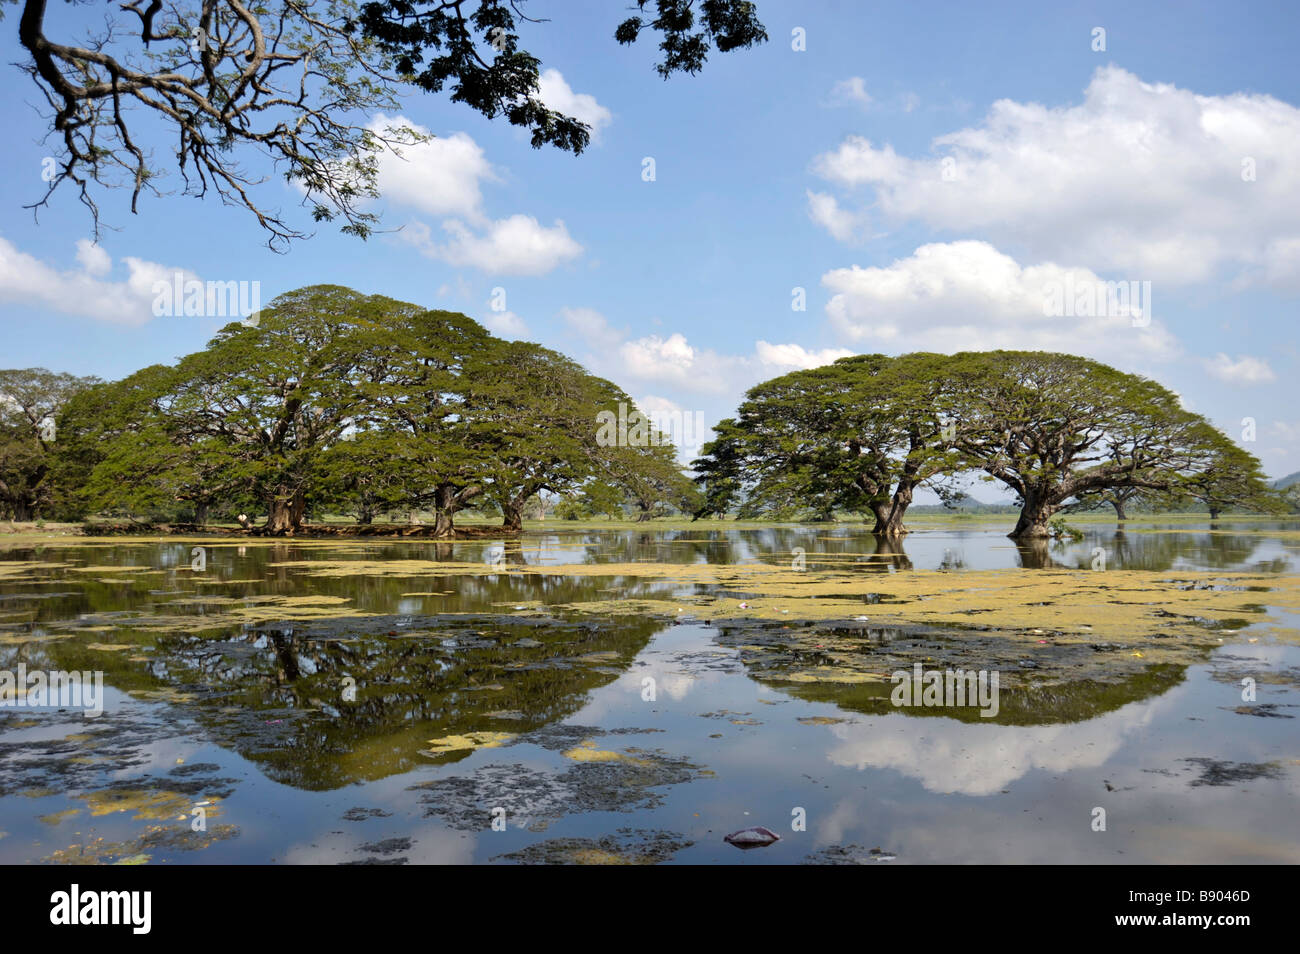 Tree reflection in littered Tissamaharama lake Sri Lanka - Stock Image